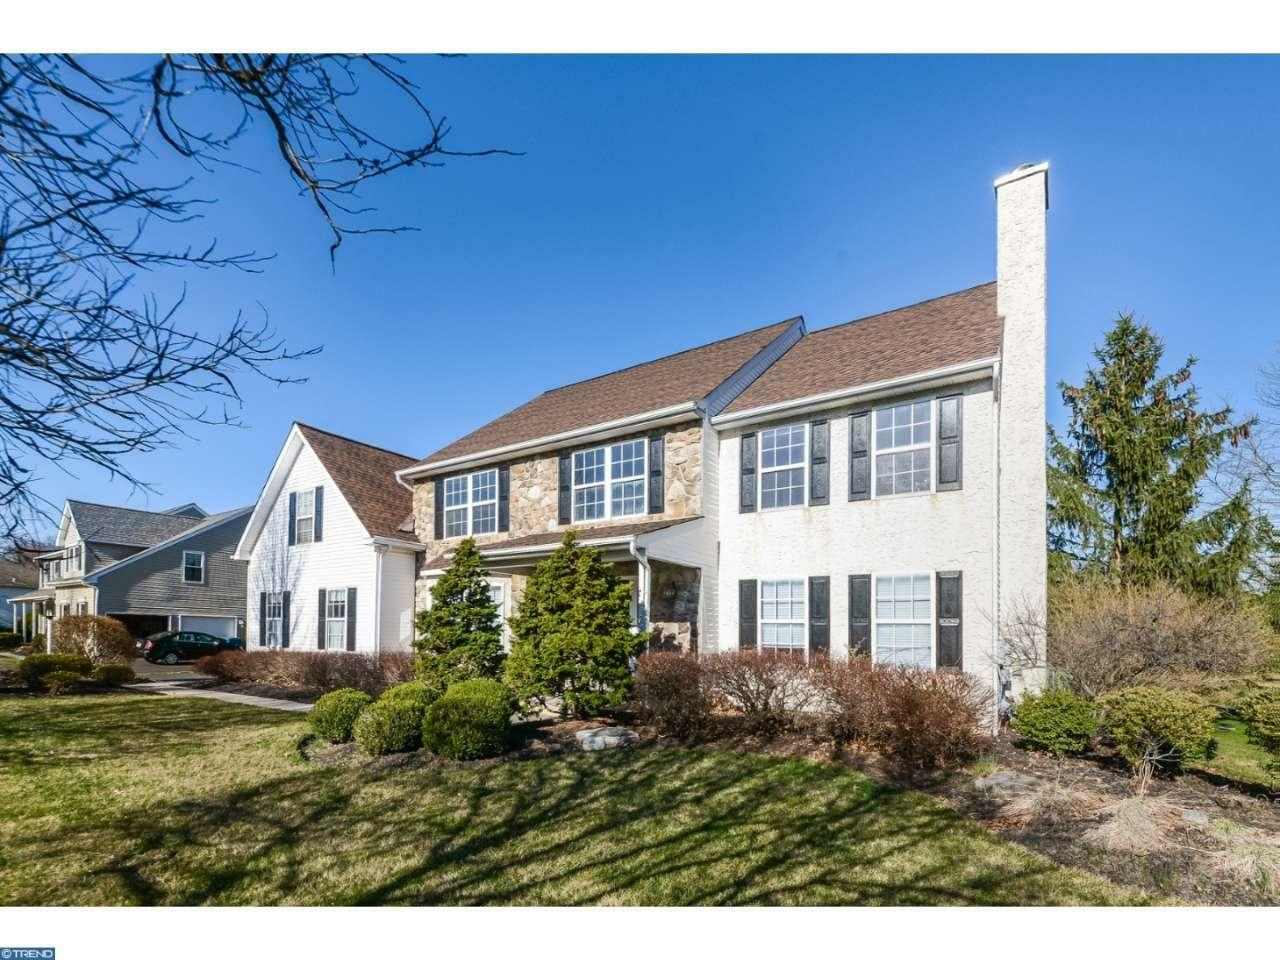 4282 Shedden Cir, Doylestown, PA - USA (photo 3)